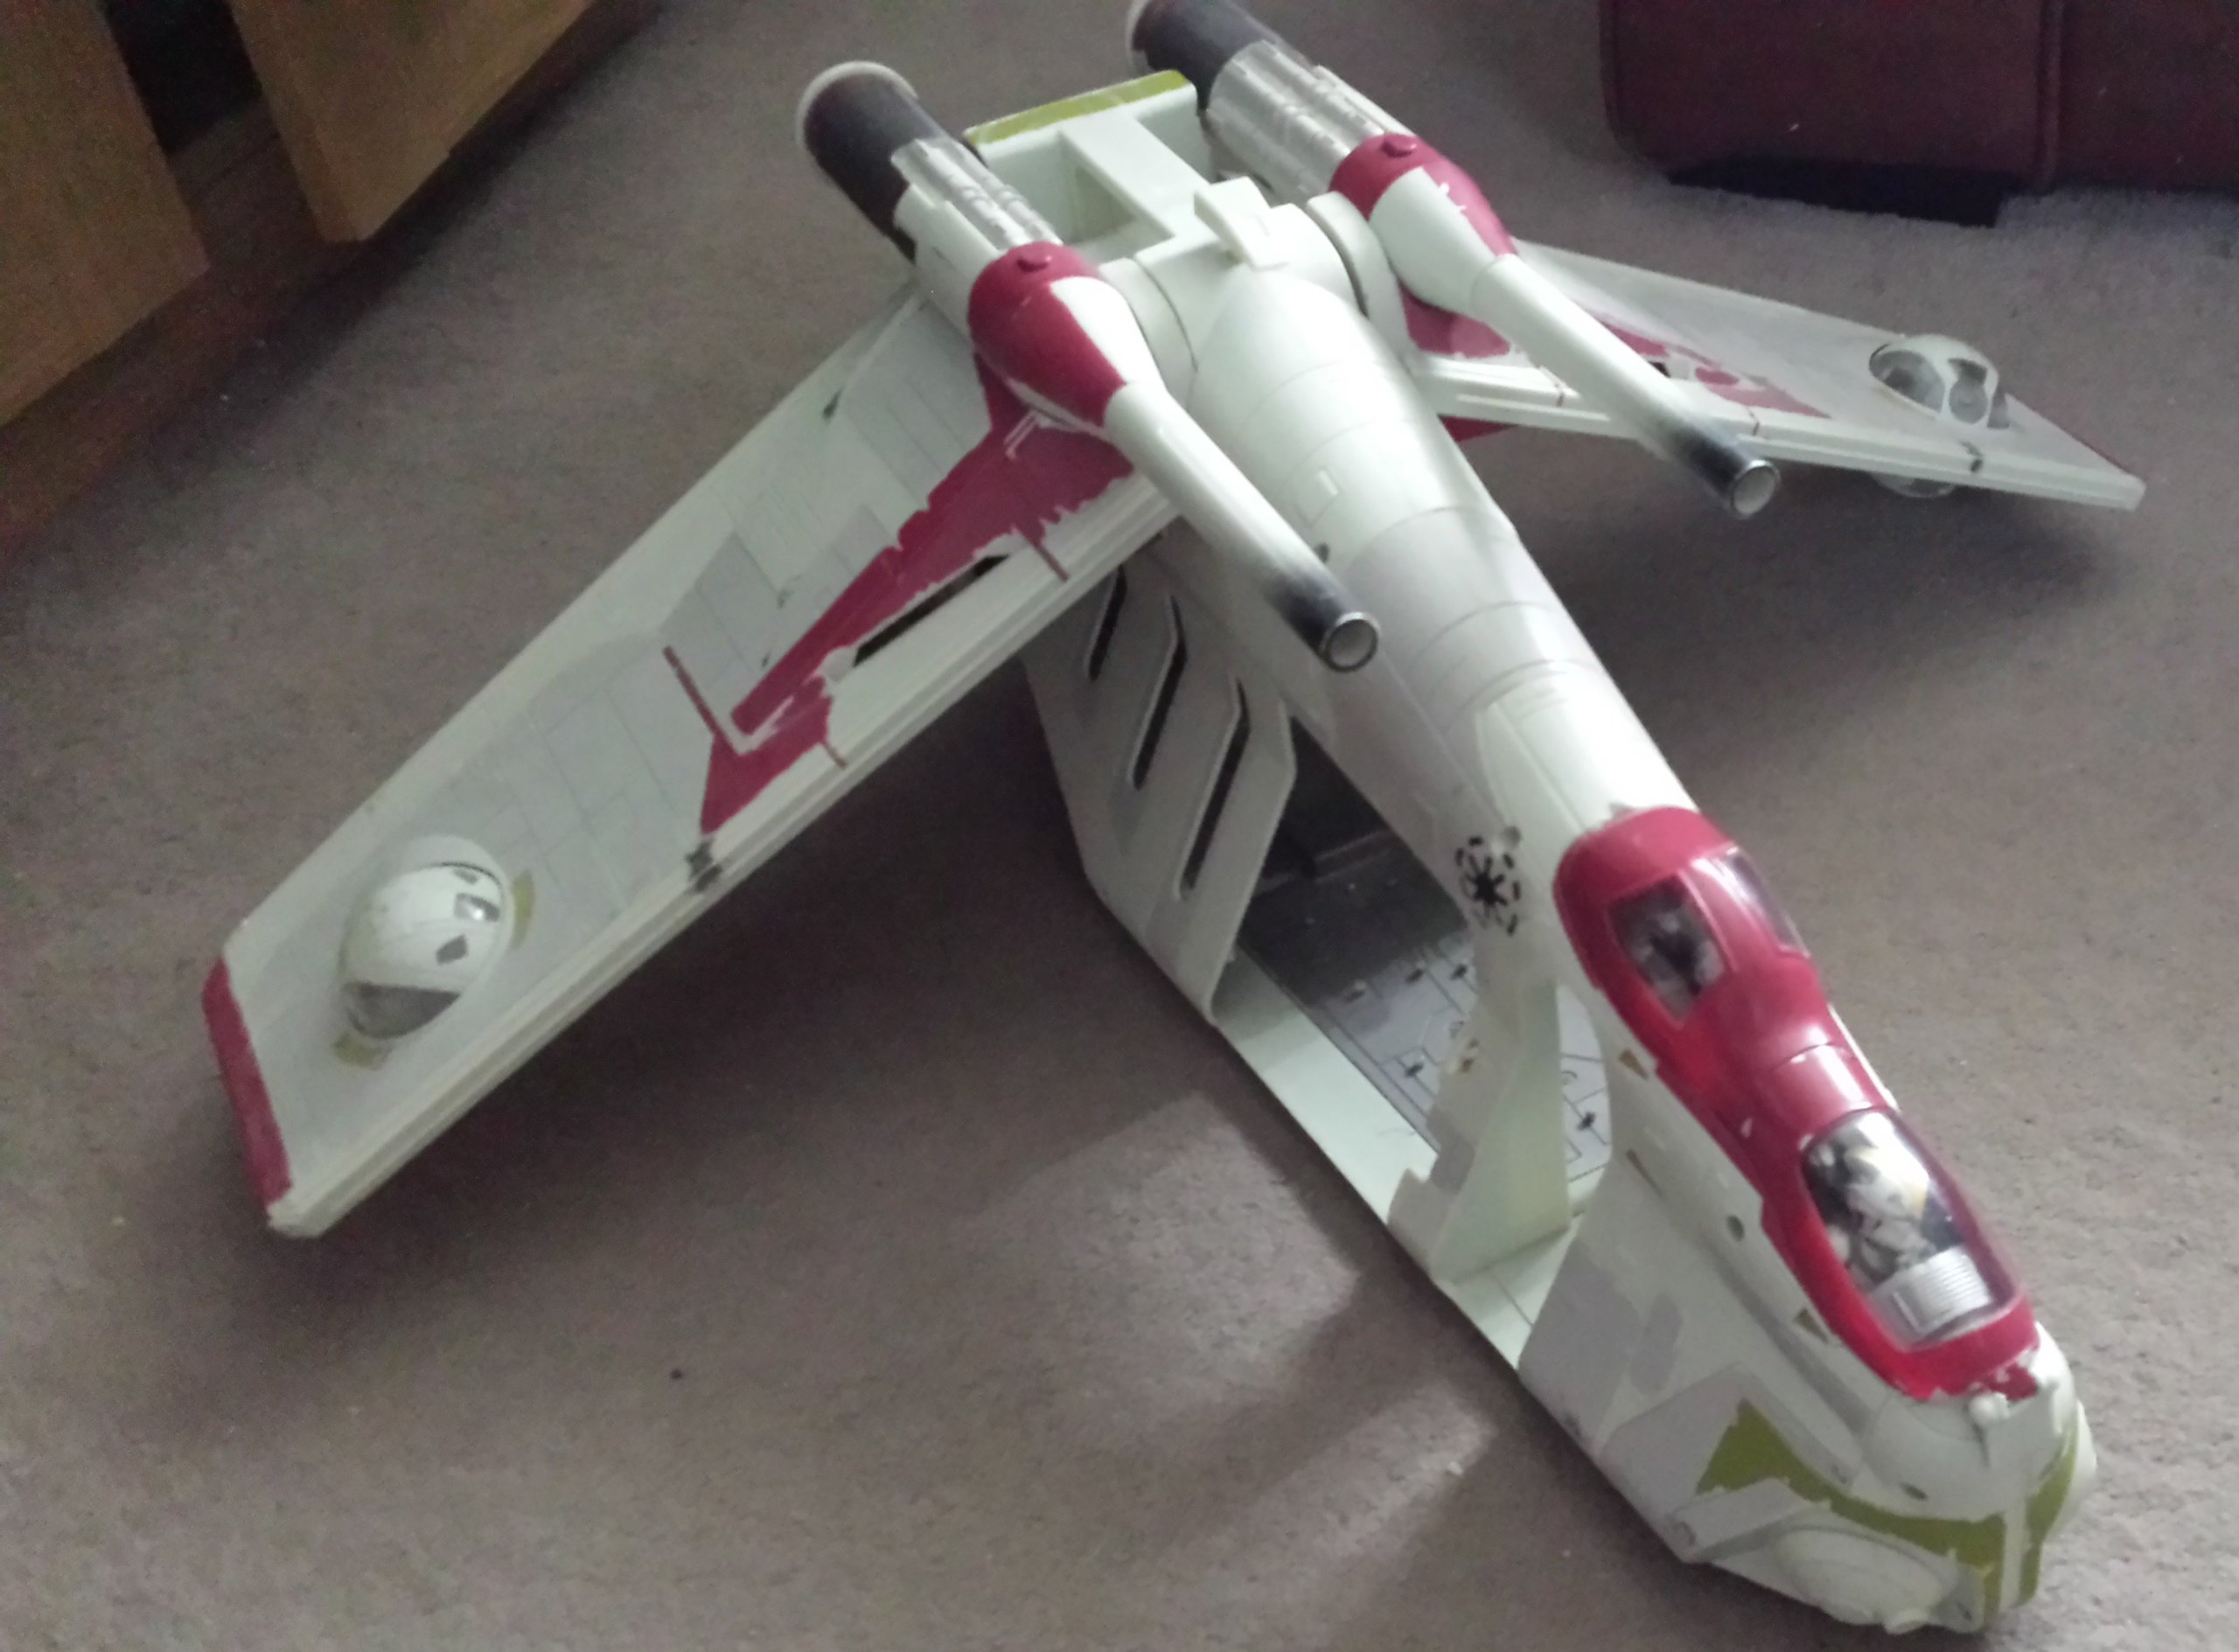 Star Wars Attack Of The Clones Republic Gunship Aotc Buy Online In Brunei Star Wars Products In Brunei See Prices Reviews And Free Delivery Over Bnd100 Desertcart